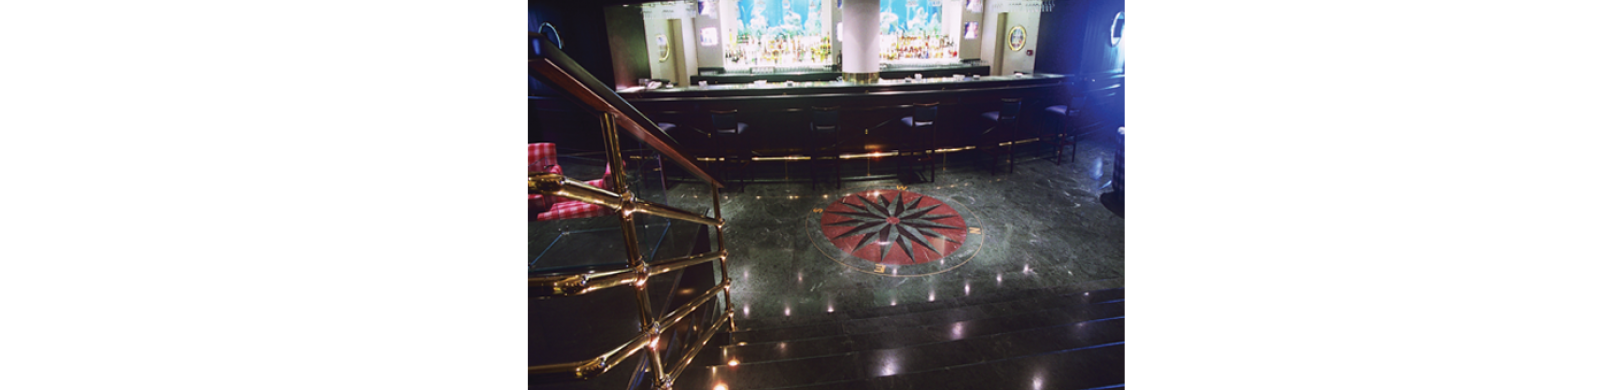 Le Royal Hotel Beirut